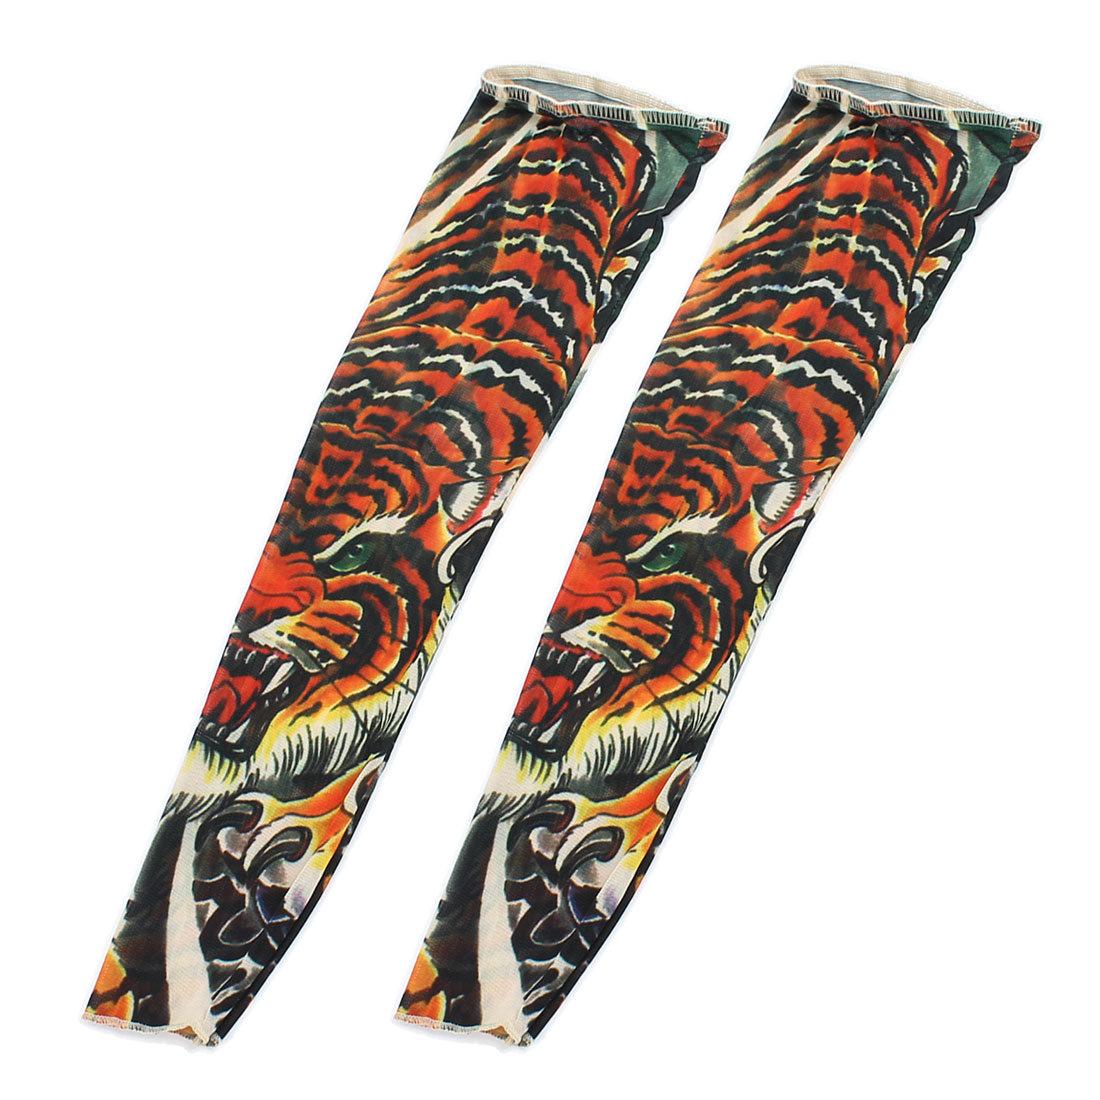 2pcs Tiger Print Sun Protect Stretchy Fake Tattoo Arm Sleeves Oversleeve Orange Red